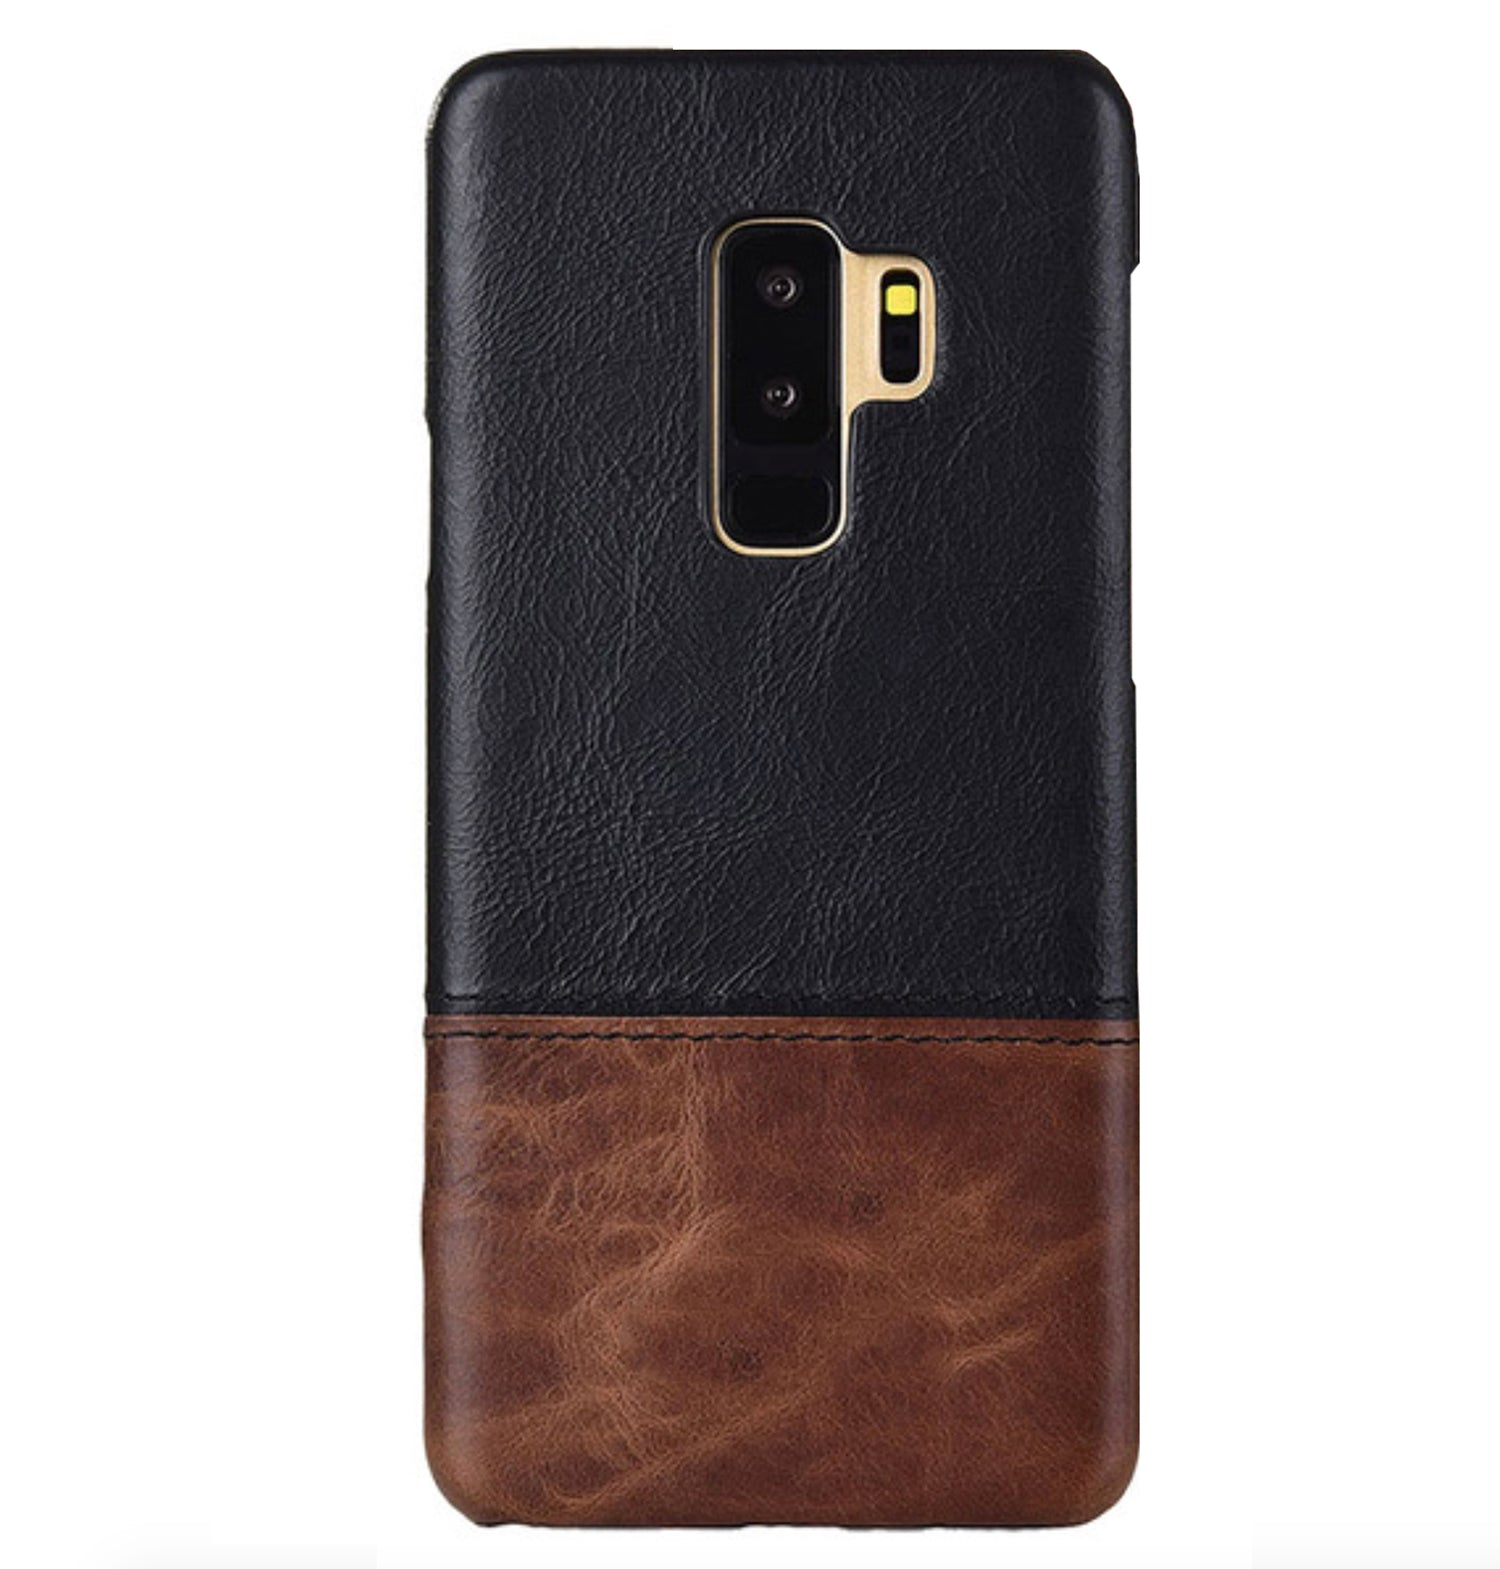 Genuine Leather Dual Color Hand Stitched Protective Case Cover for Samsung Galaxy S9+ (PLUS) - Black , Brown - Mobizang